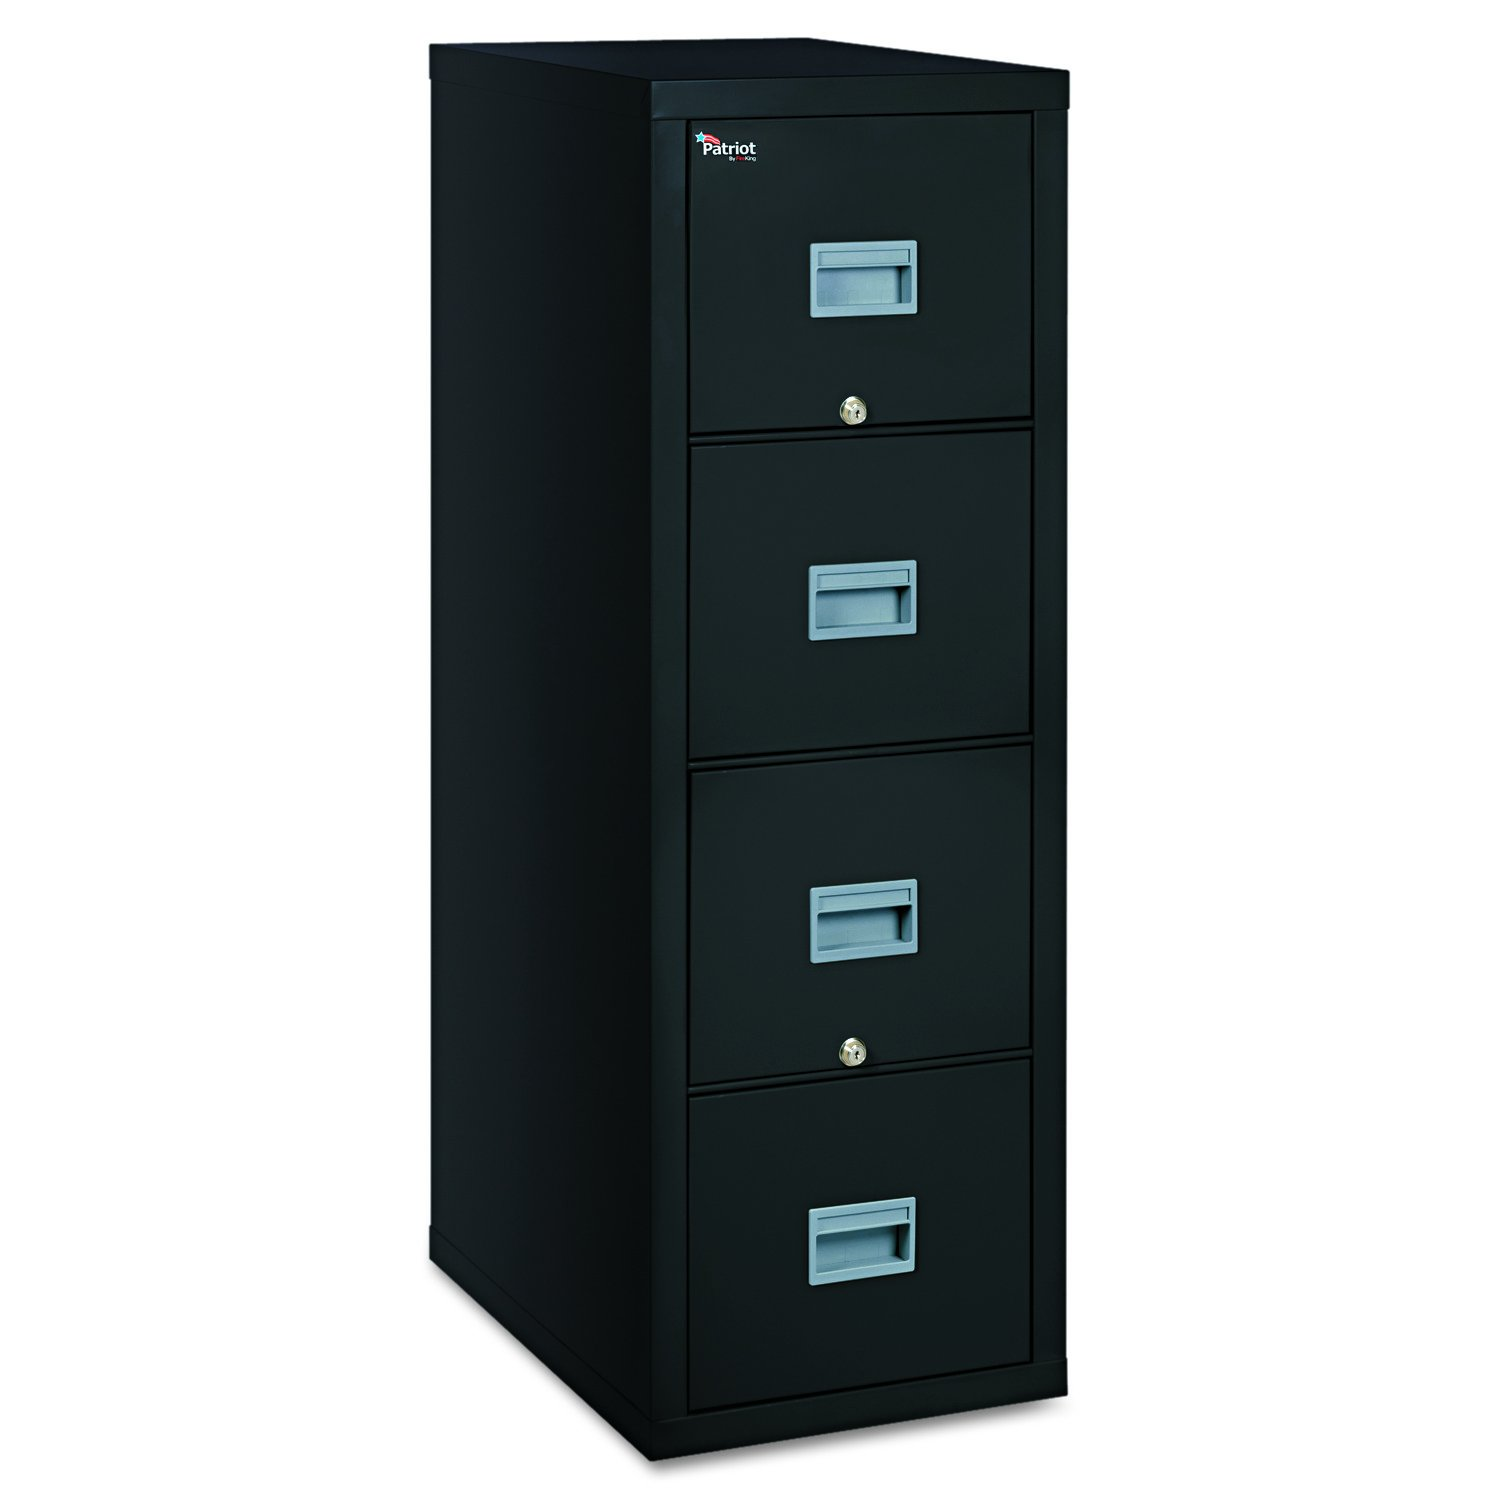 FireKing Patriot 4P1825-CBL One-Hour Fireproof Vertical Filing Cabinet, 4 Drawers, Deep Letter or Legal Size, 18'' W x 25'' D, Black, Made in USA by FireKing